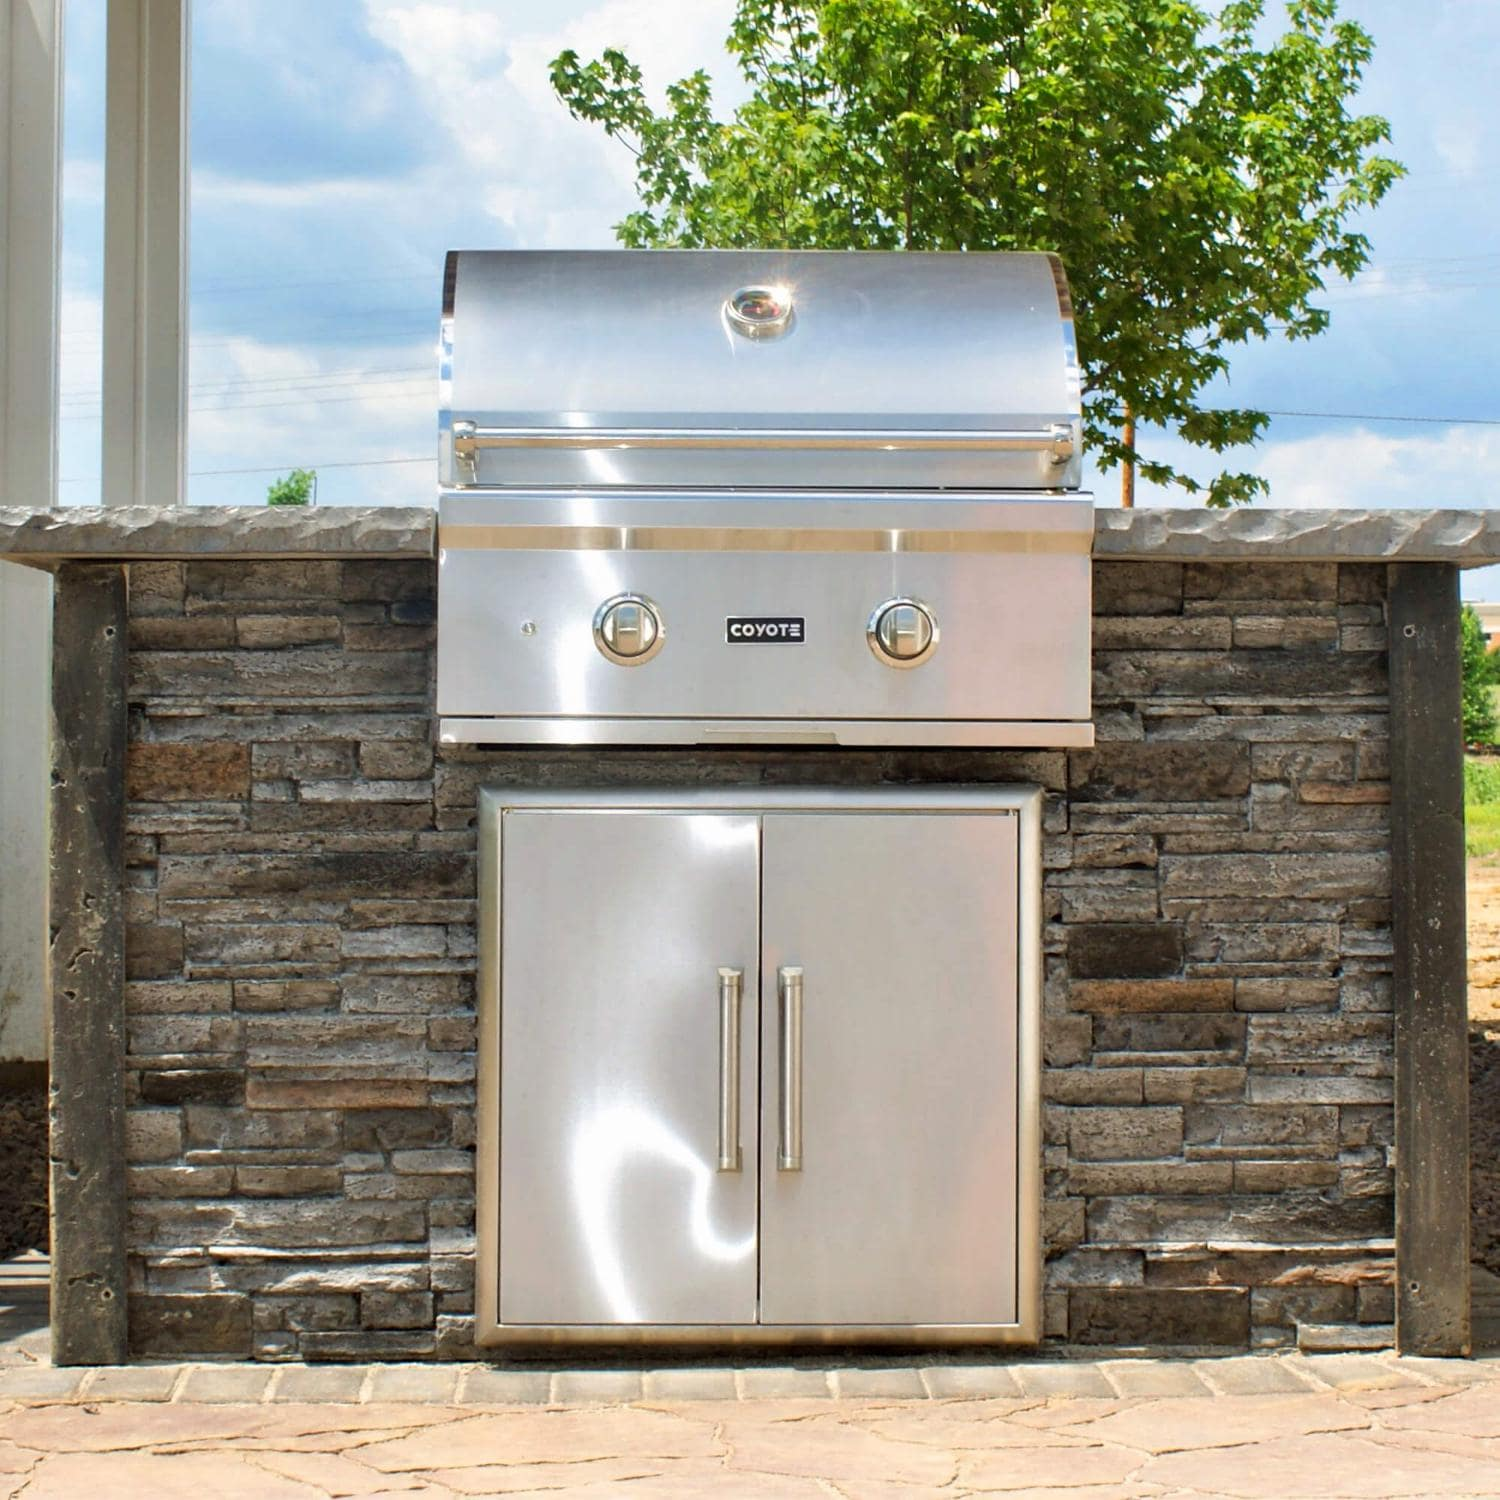 Coyote Ready-To-Assemble 5 Ft Outdoor Kitchen Island With 28-Inch C-Series Natural Gas Grill (Ships As Propane With Conversion Fittings) - Stacked Stone/Stone Gray - RTAC-G5-SG-C1C28NG